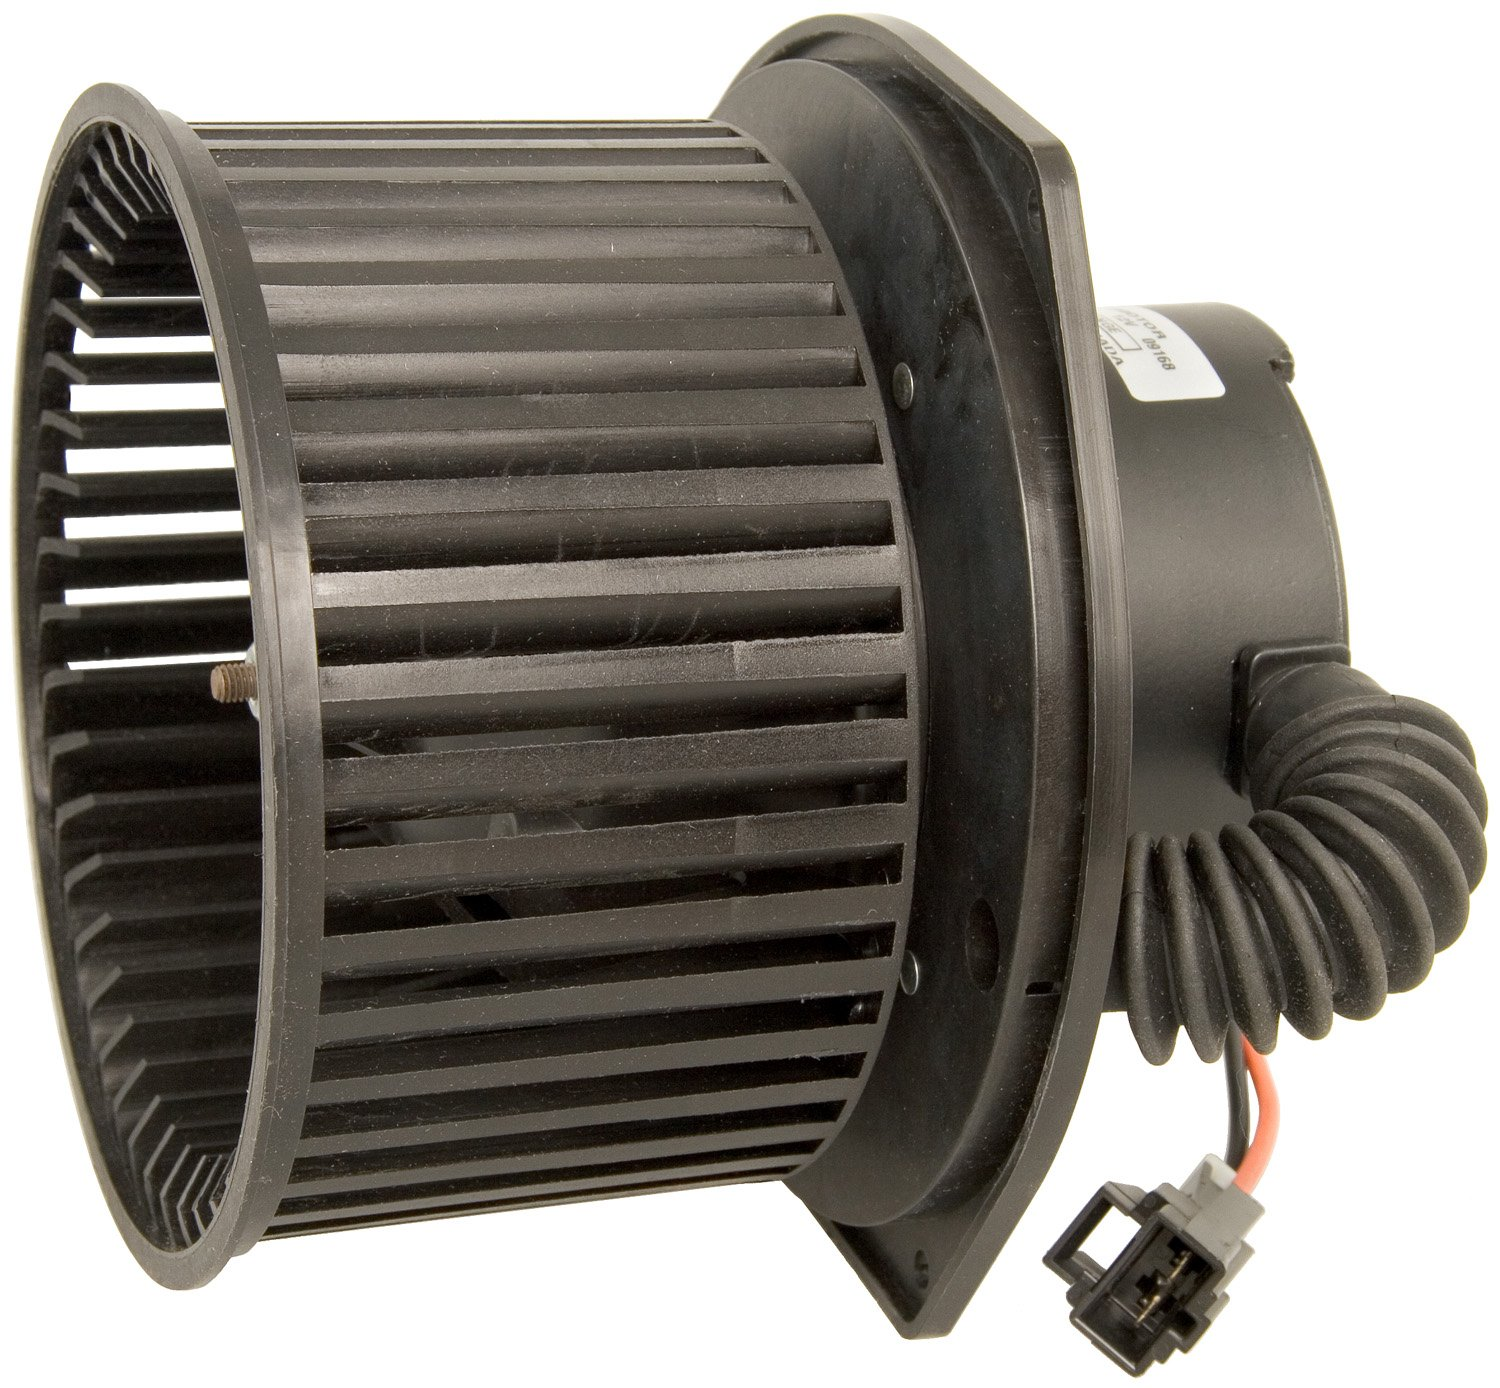 Four Seasons/Trumark 75778 Blower Motor with Wheel